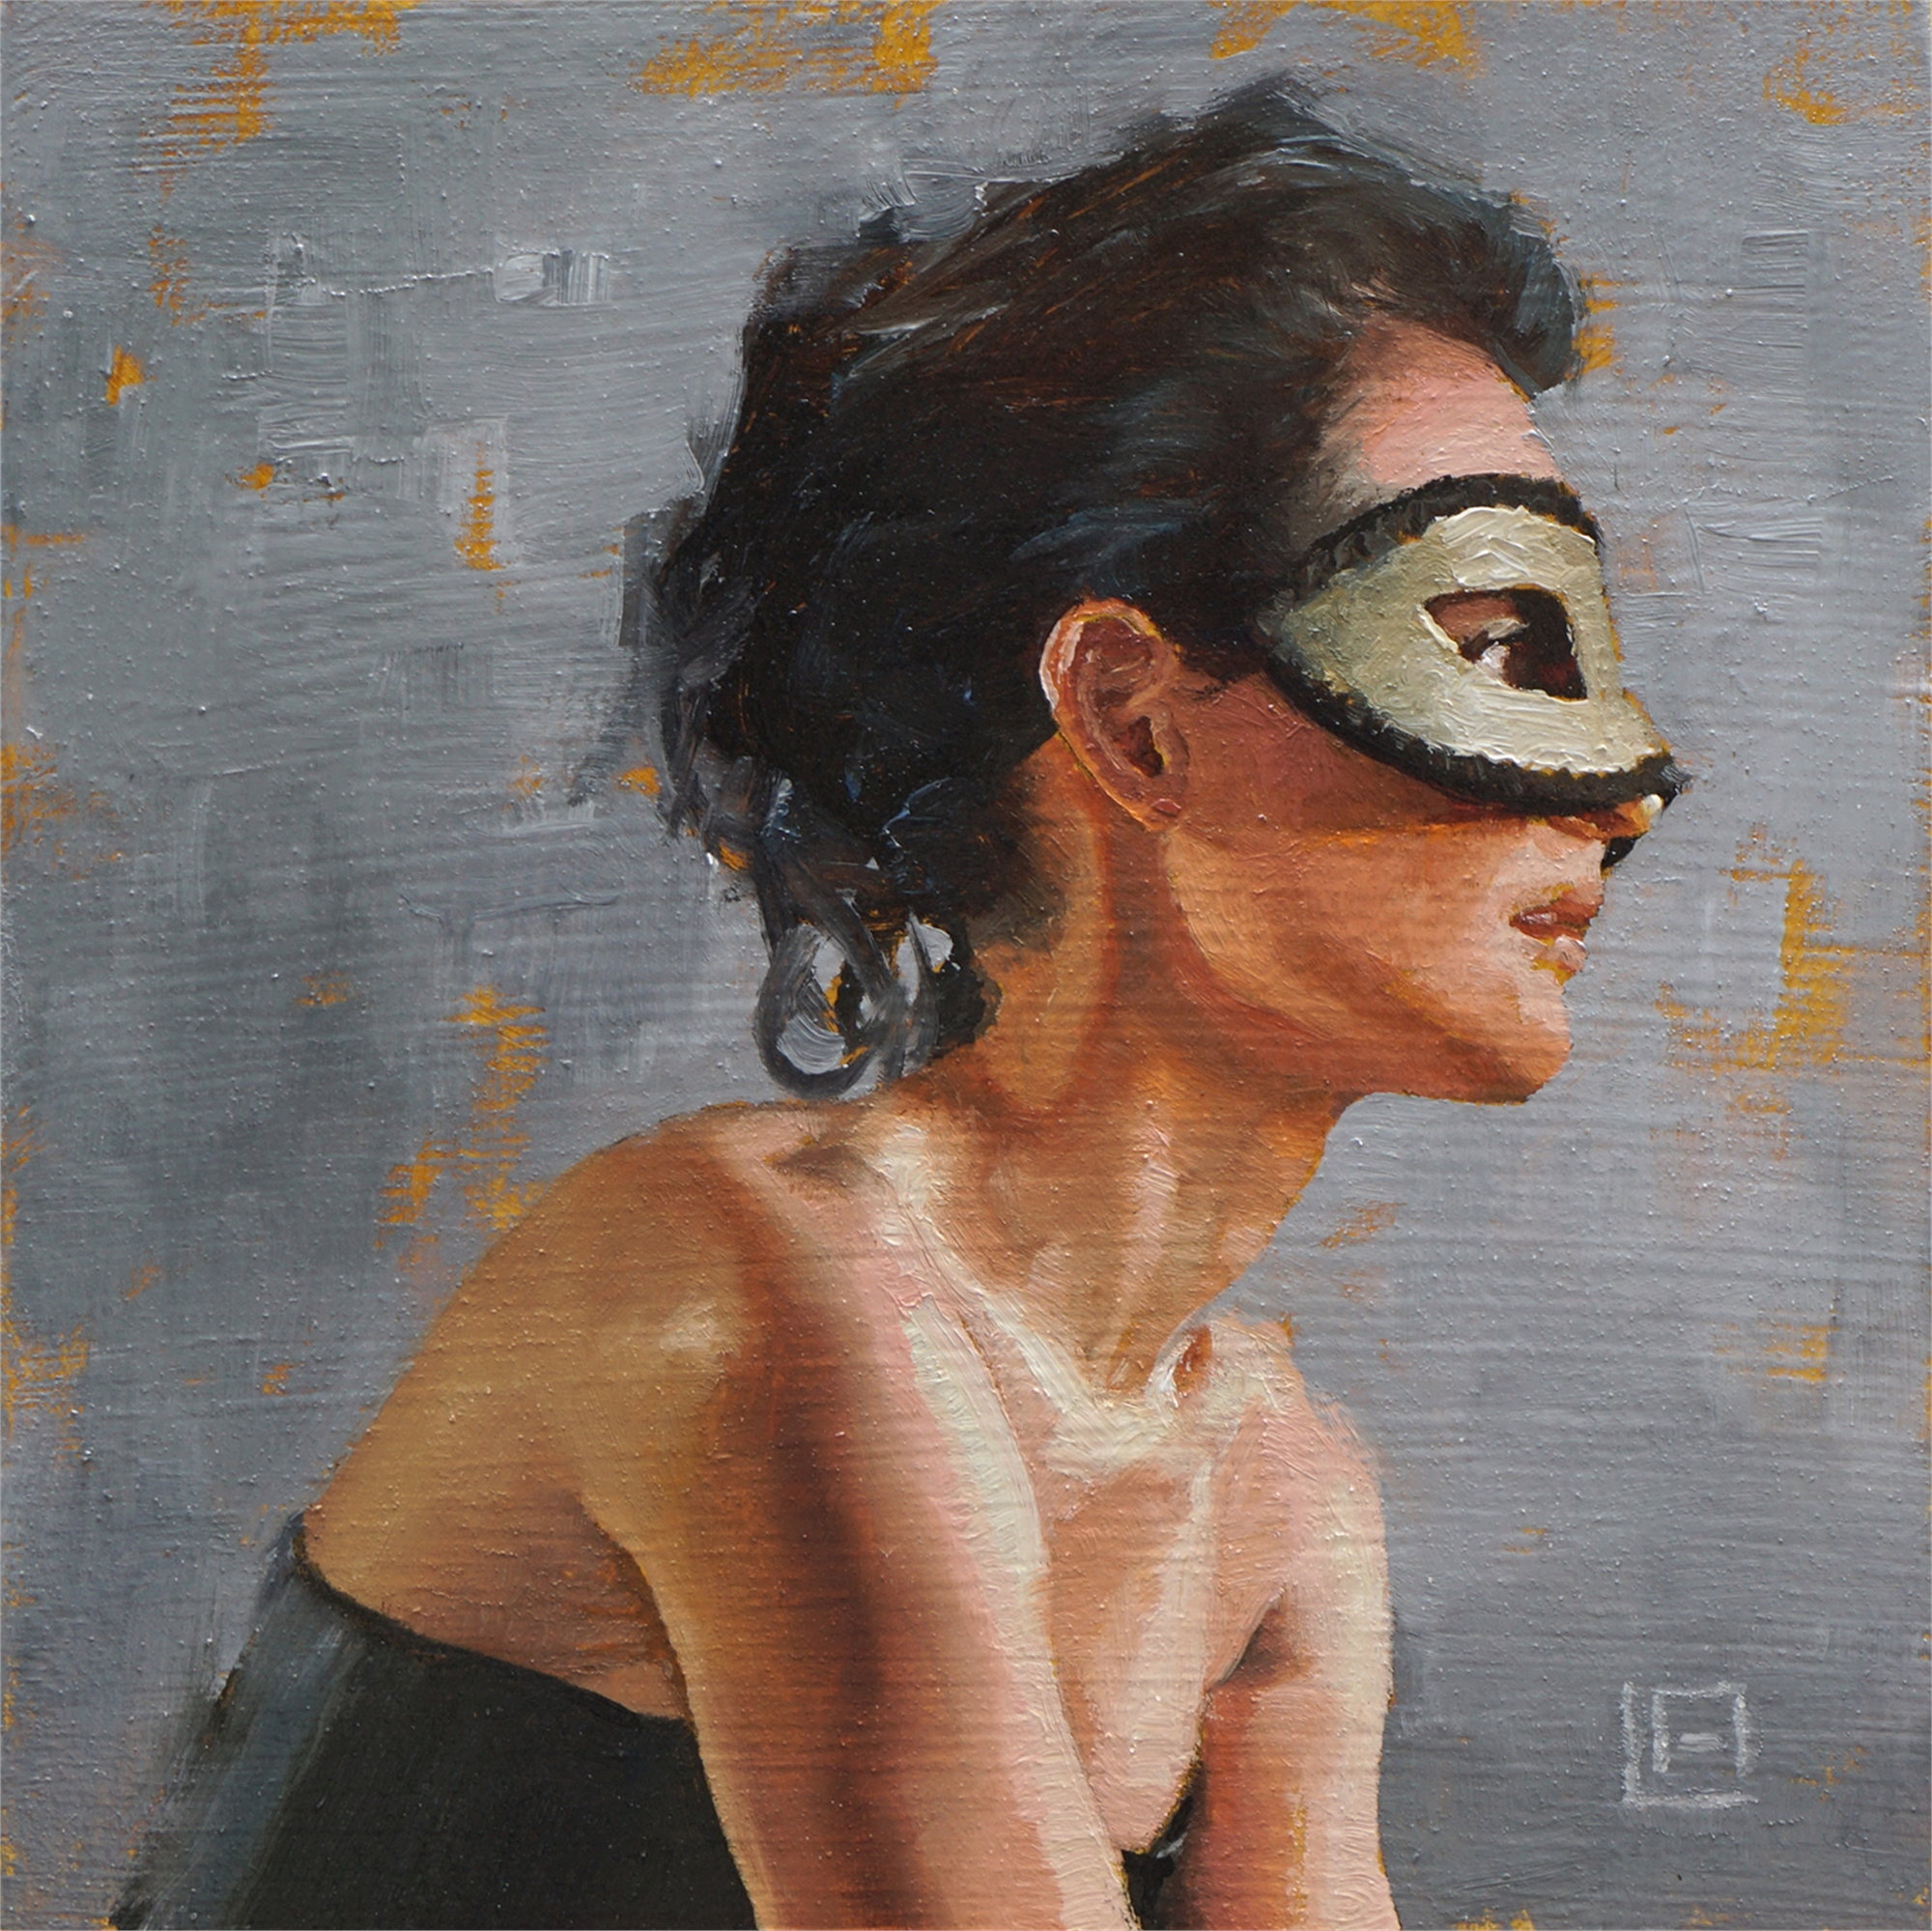 Lady with Mask by Linda Adair